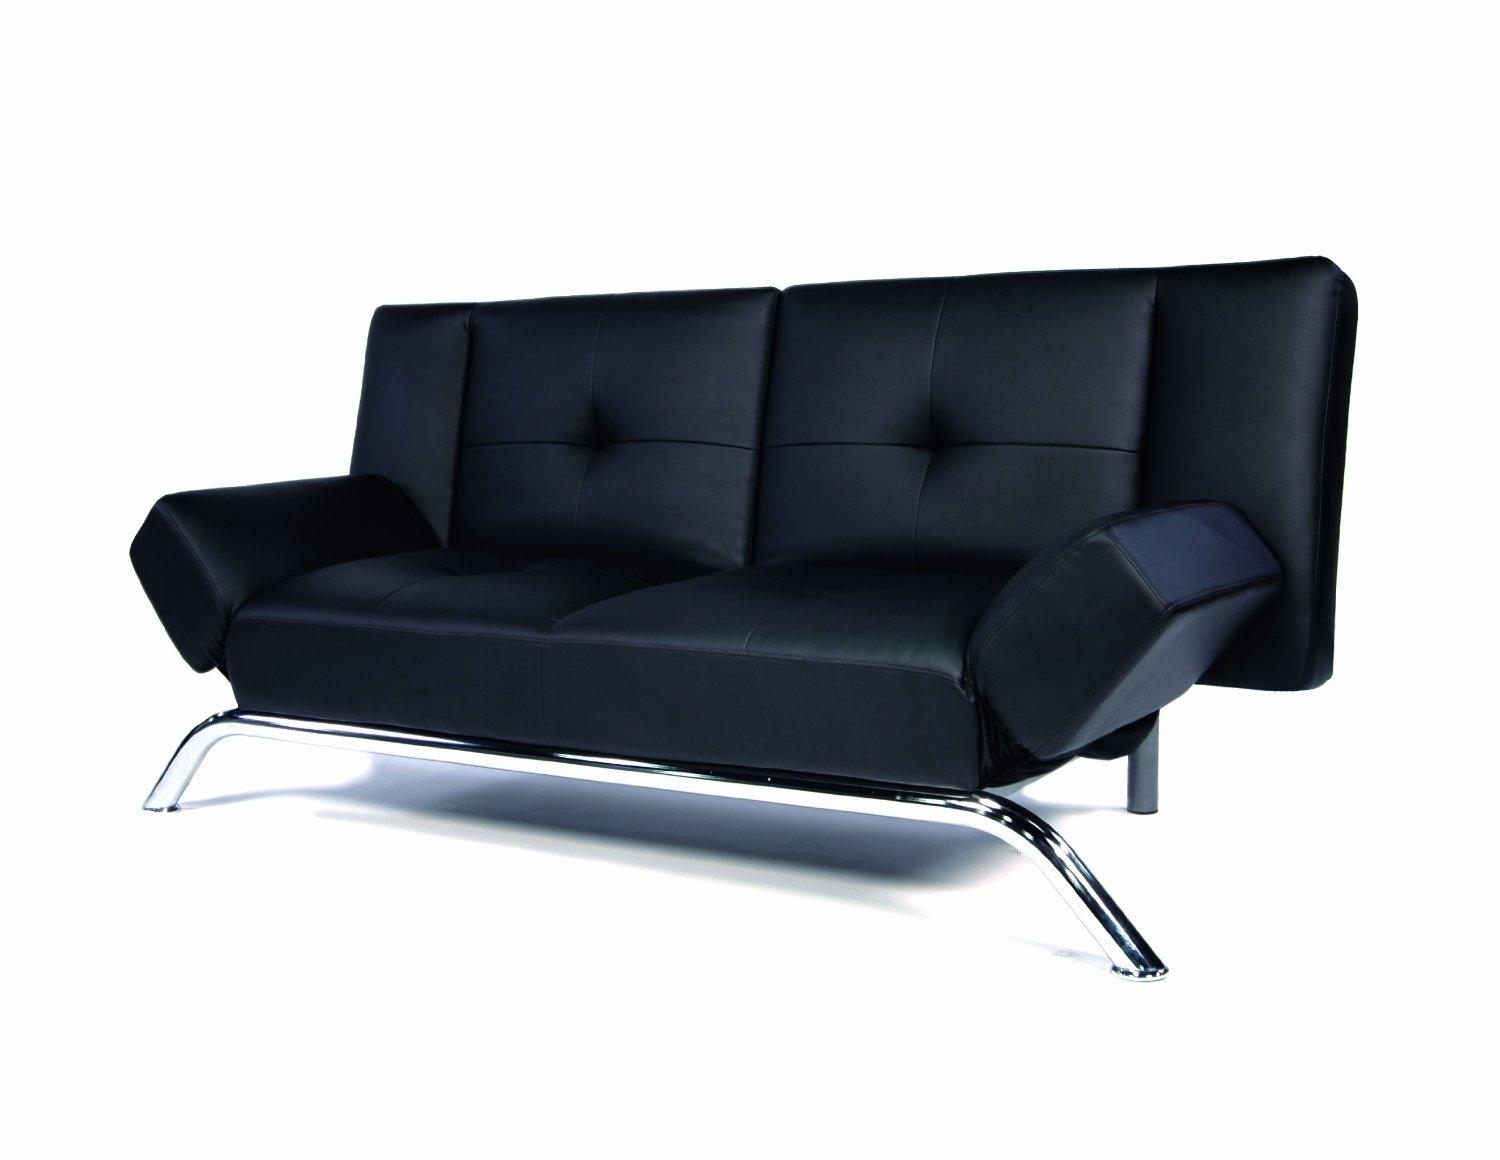 Leather Convertible Sofa With Black Leather Convertible Sofas (View 8 of 20)